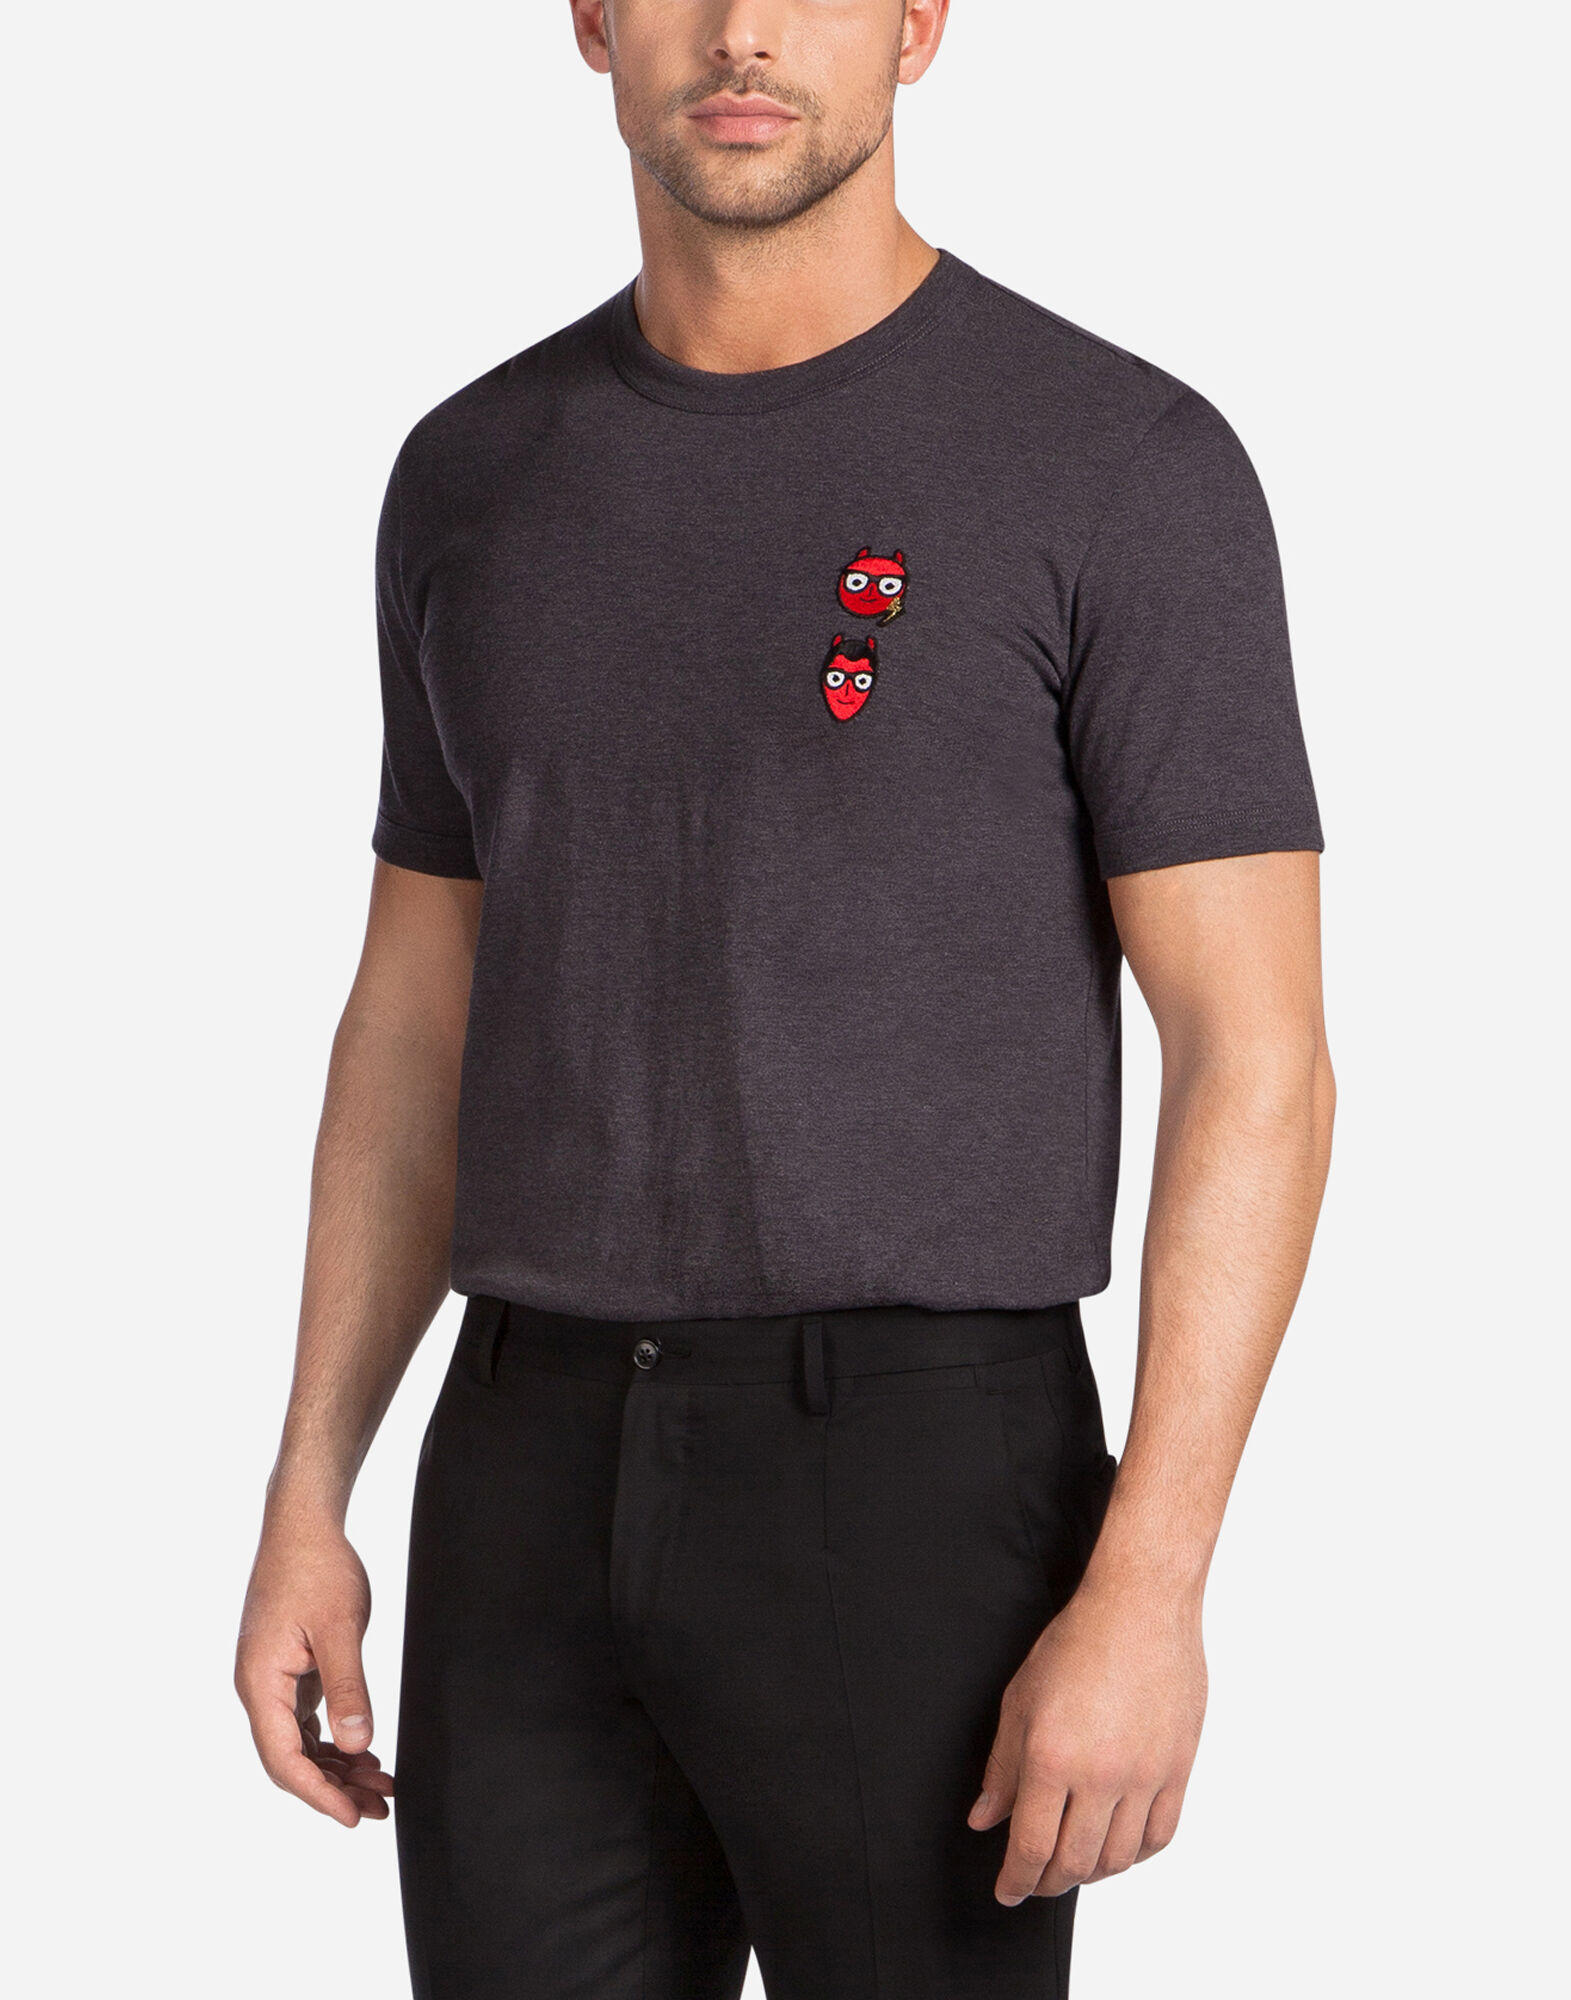 COTTON T-SHIRT WITH DESIGNERS' PATCH